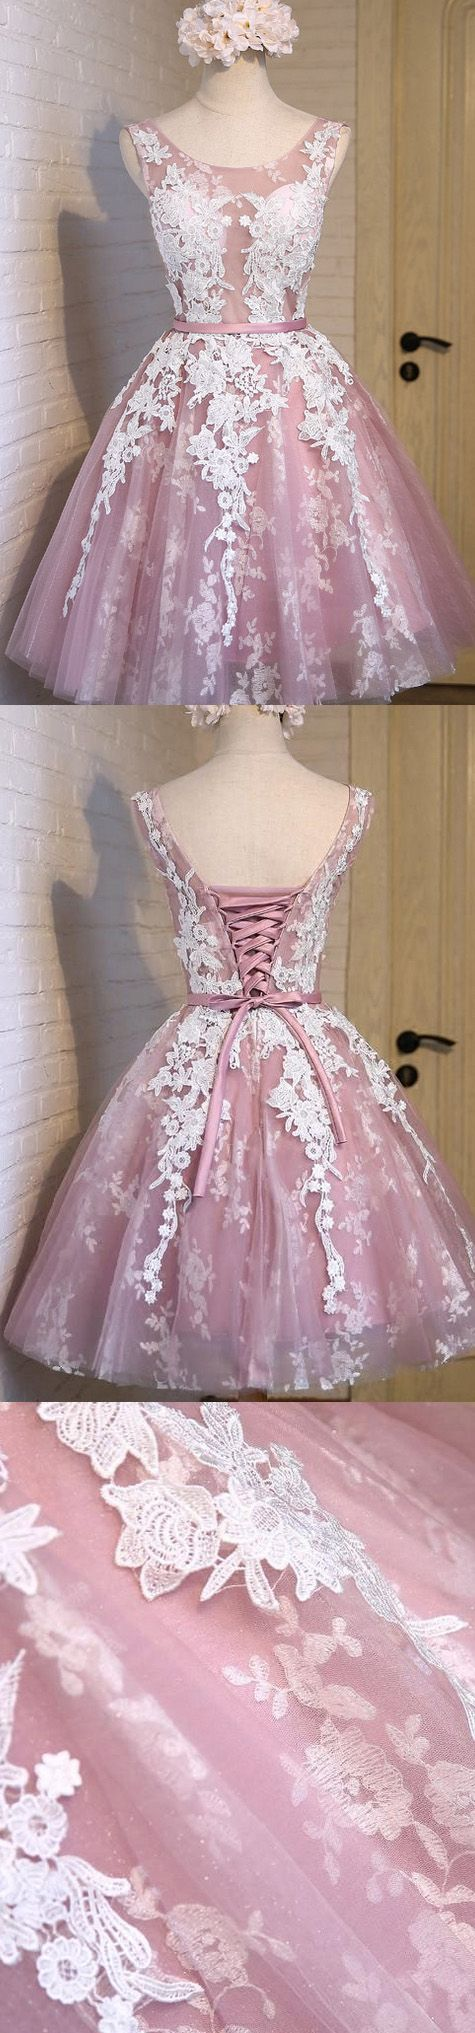 Prom Dresses 2017, Short Prom Dresses, 2017 Prom Dresses, Sexy Prom dresses, Prom Dresses Short, Sexy Homecoming Dresses, Short Homecoming Dresses, Prom Short Dresses, Homecoming Dresses 2017, Sleeveless Prom Dresses, Lilac Sleeveless Homecoming Dresses, 2017 Homecoming Dress Lilac Lace-up Sexy Short Prom Dress Party Dress